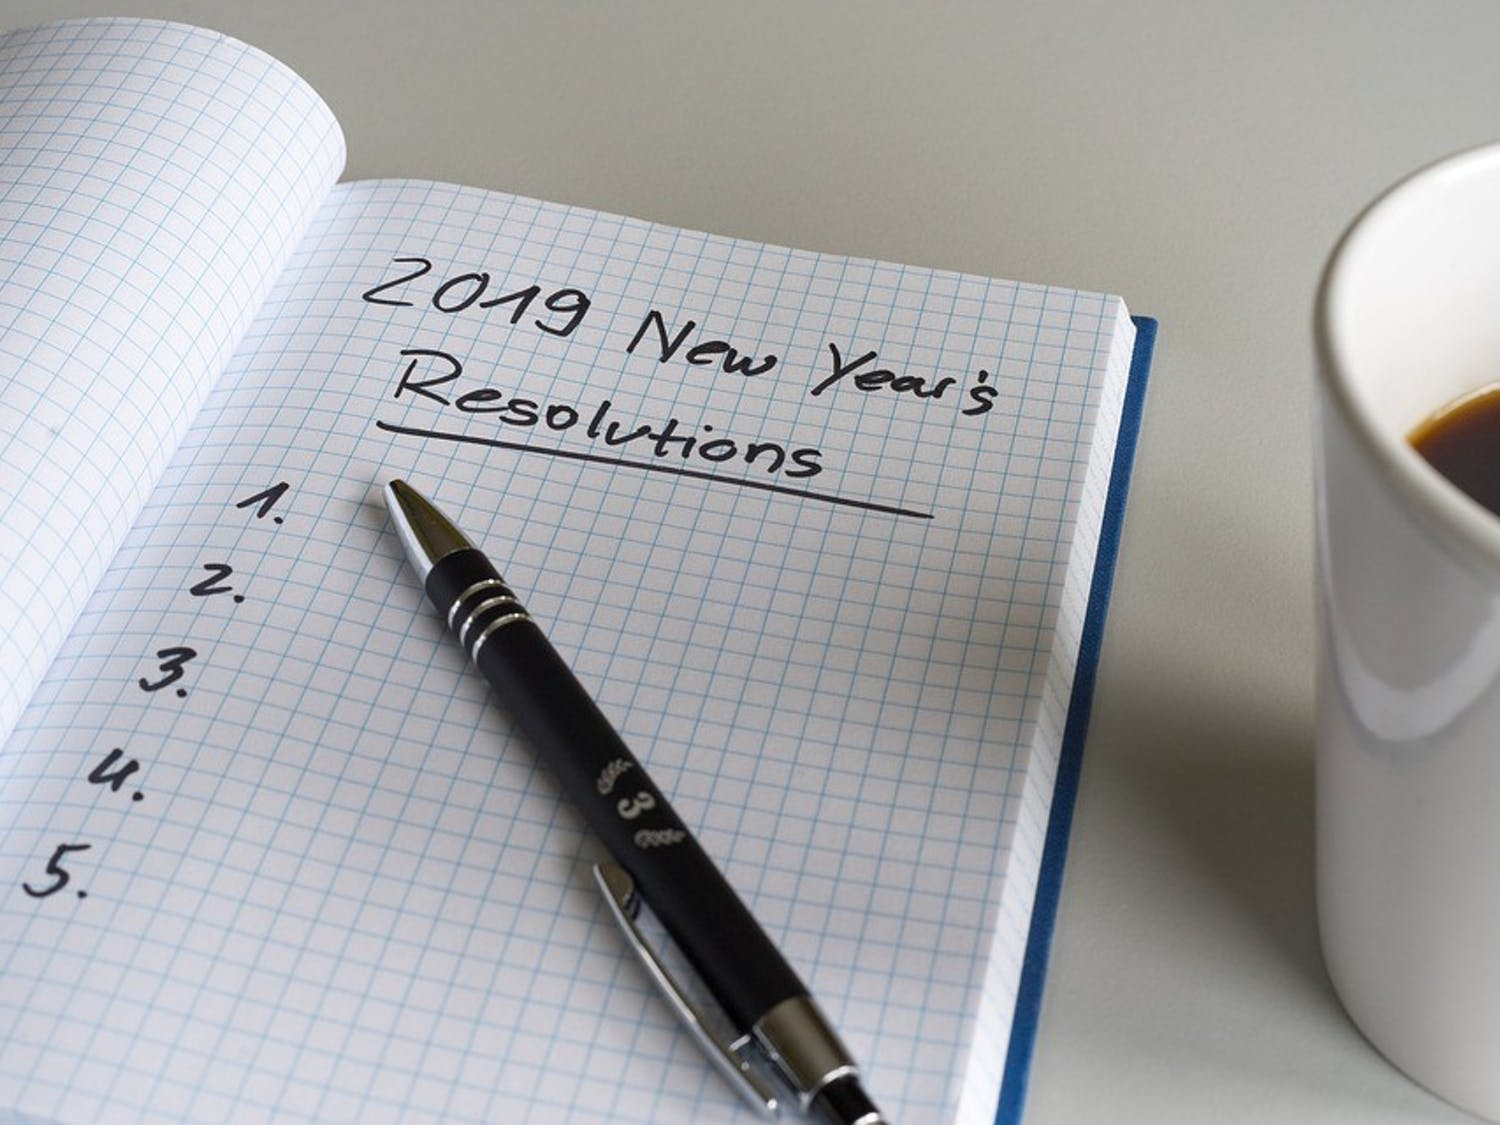 The new year often causes many to make New Year's resolutions.